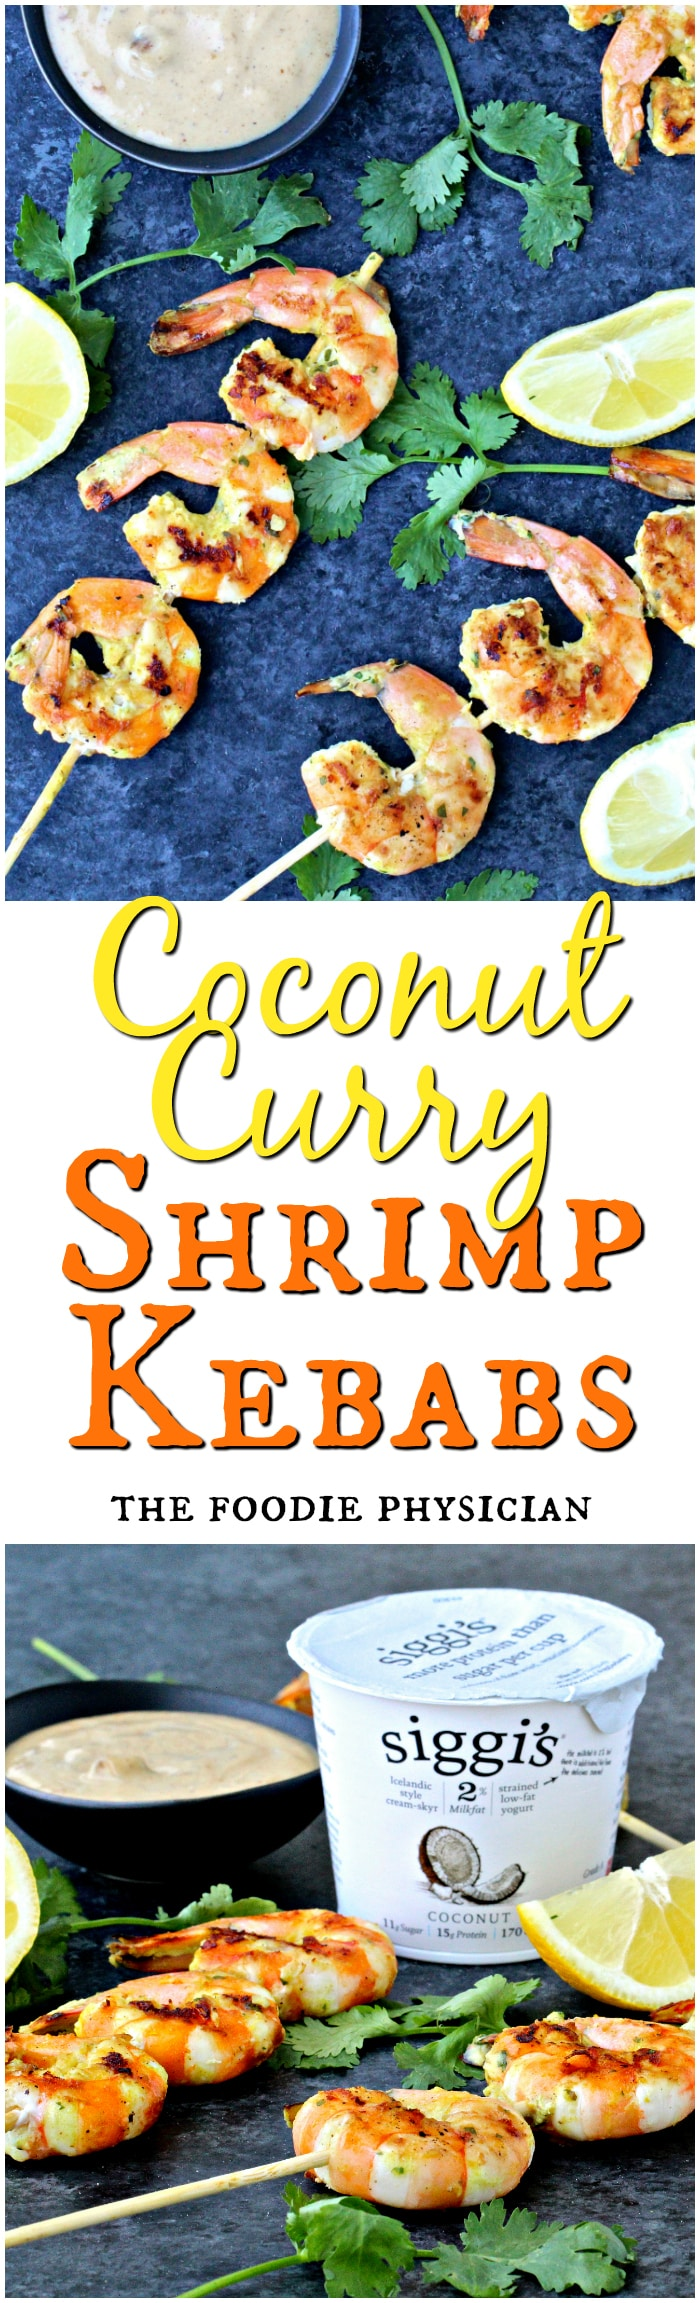 Coconut Curry Shrimp Kebabs   @foodiephysician